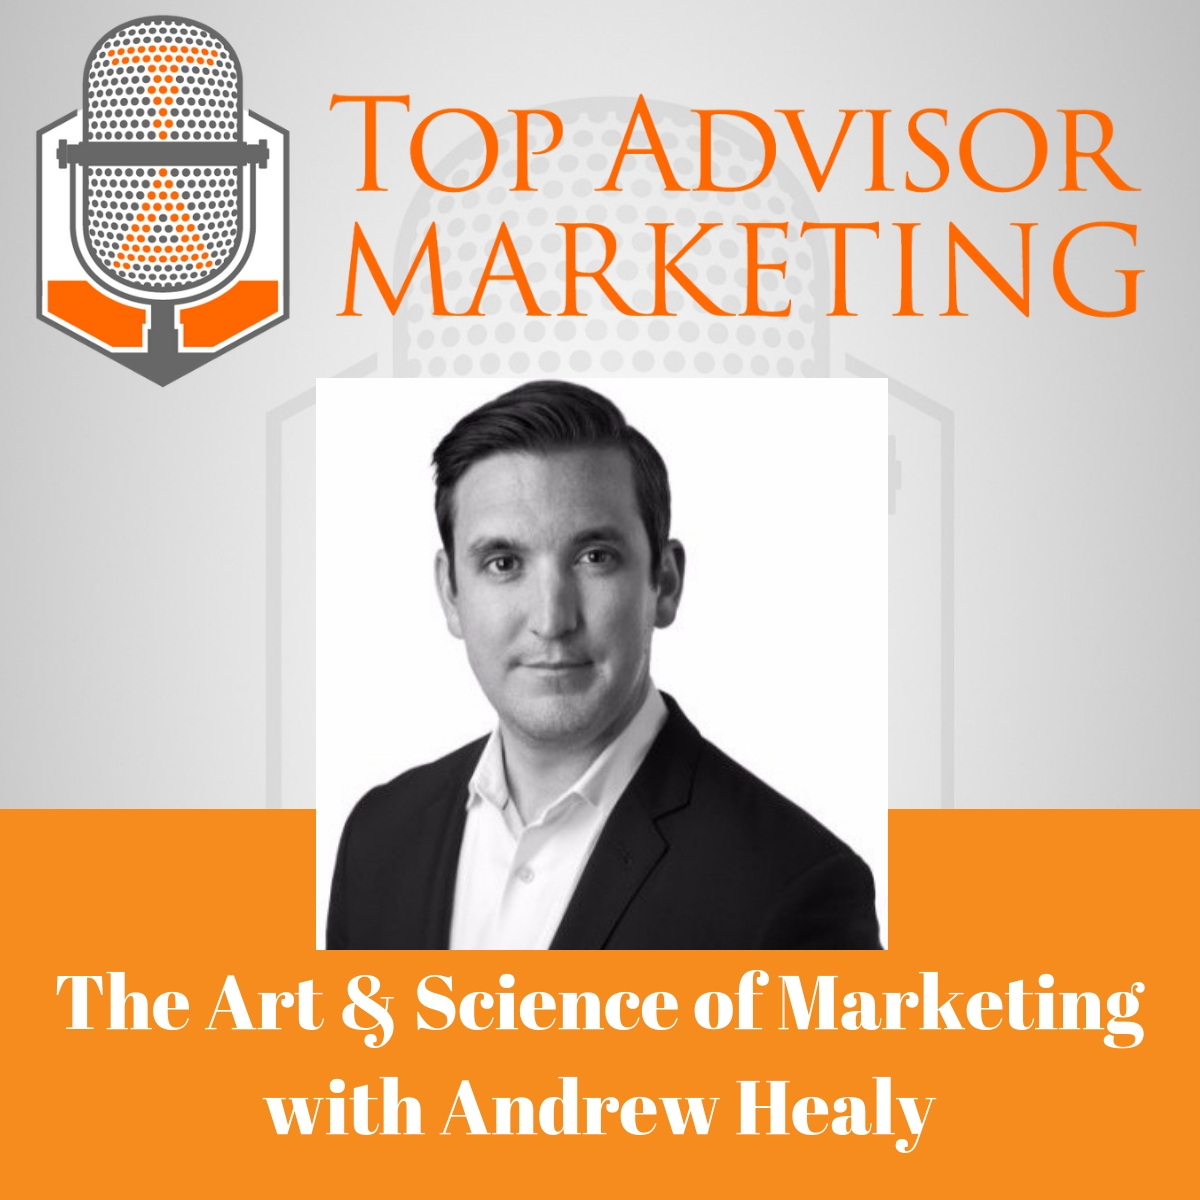 Episode 154 - The Art & Science of Marketing with Andrew Healy